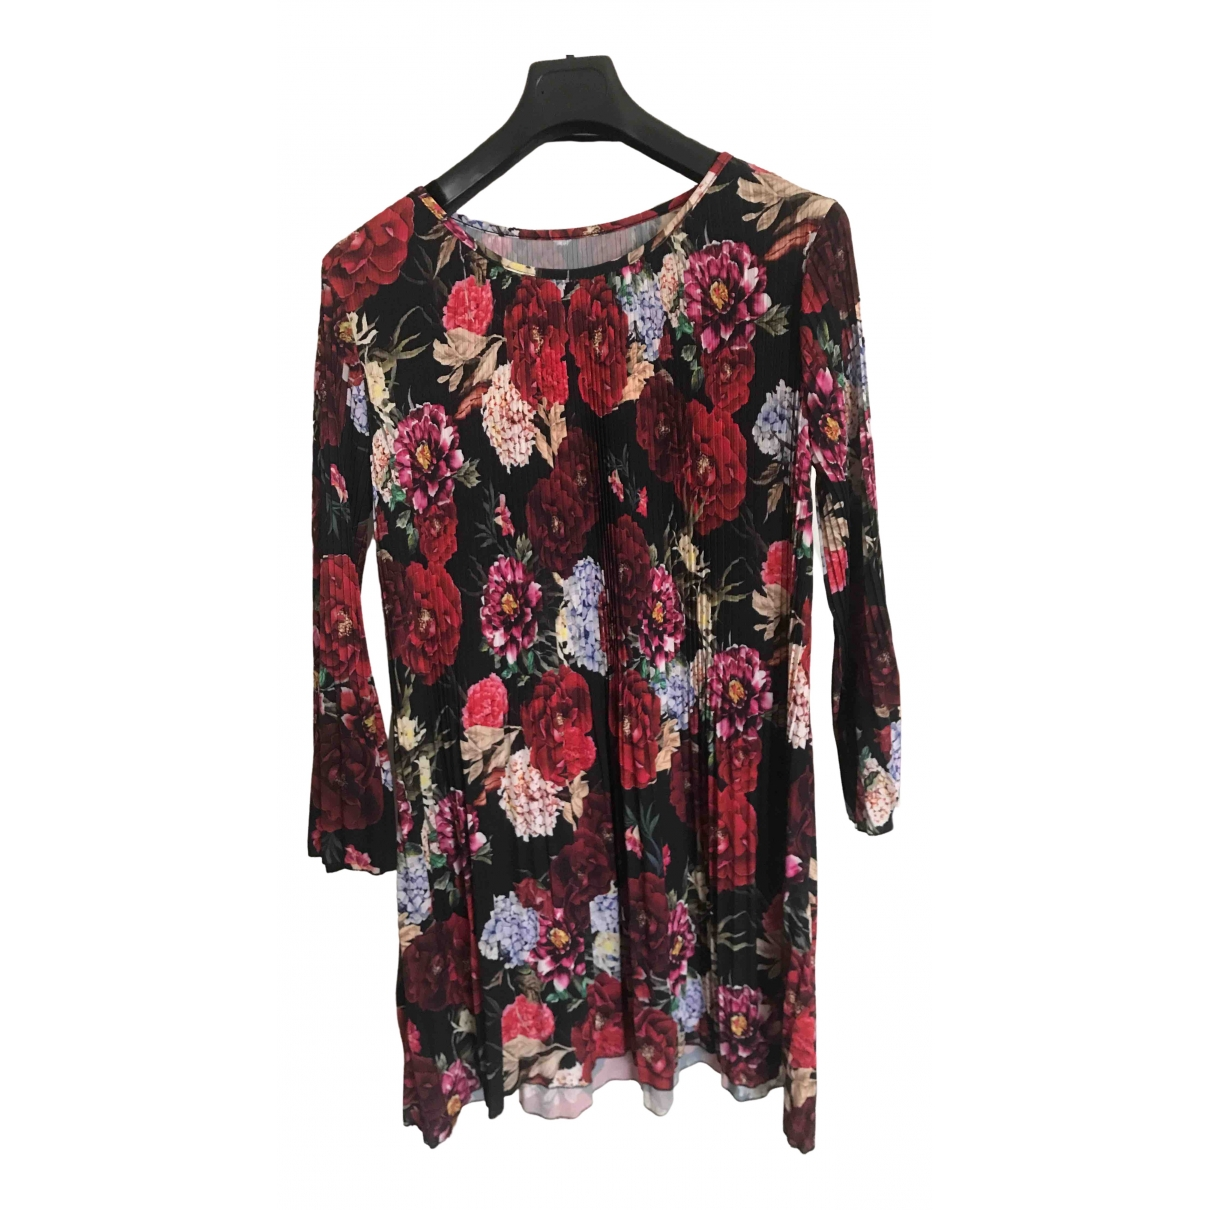 Non Signé / Unsigned \N dress for Women One Size FR